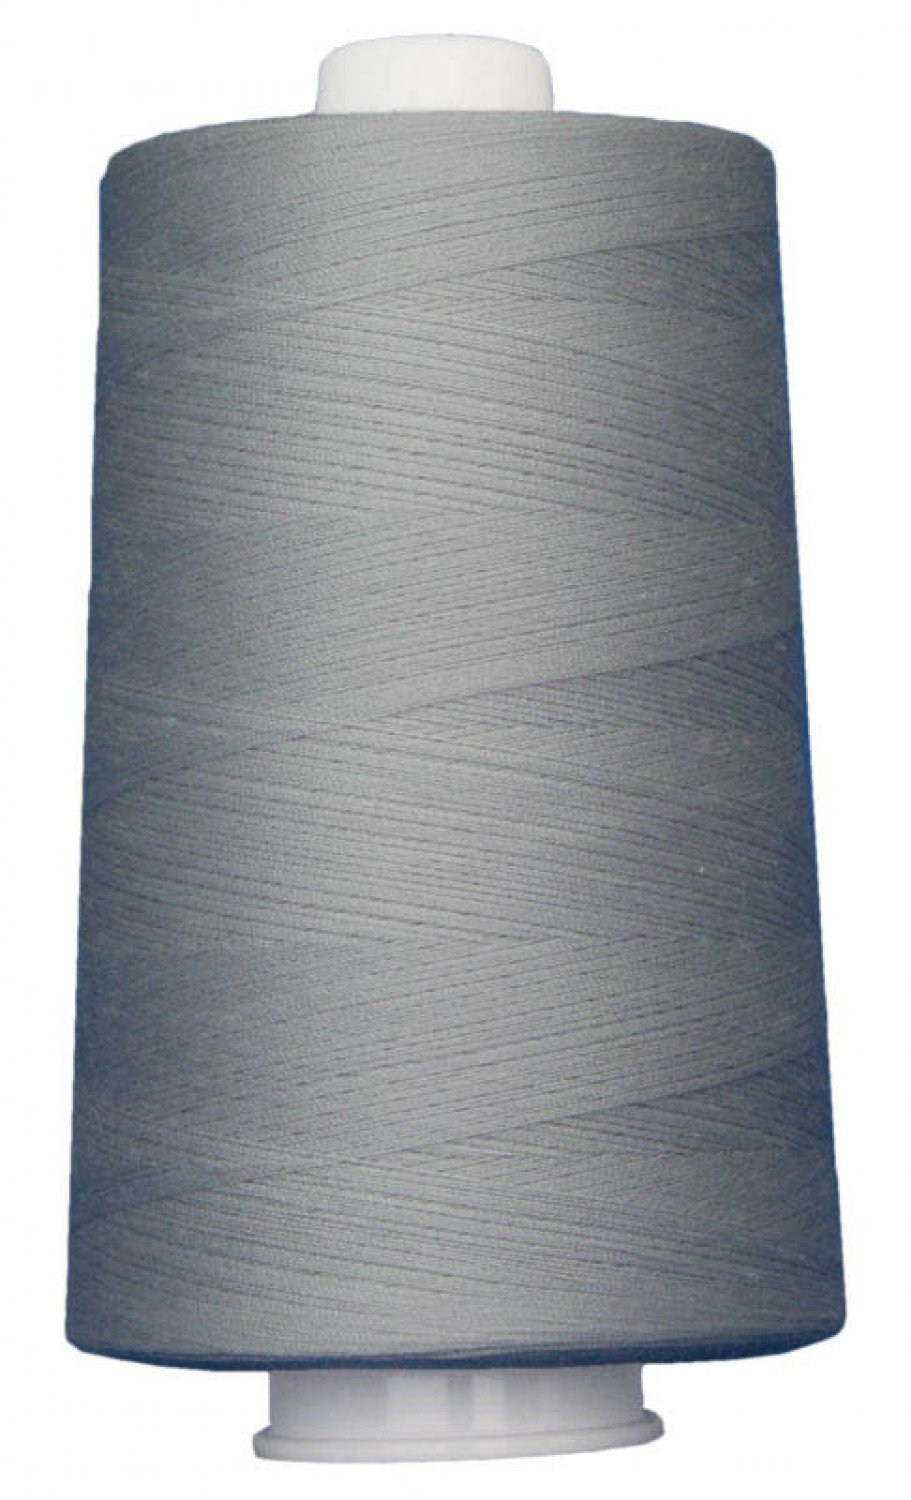 OMNI Polyester Thread 40 wt  6000 yds 3022 Silver by Superior